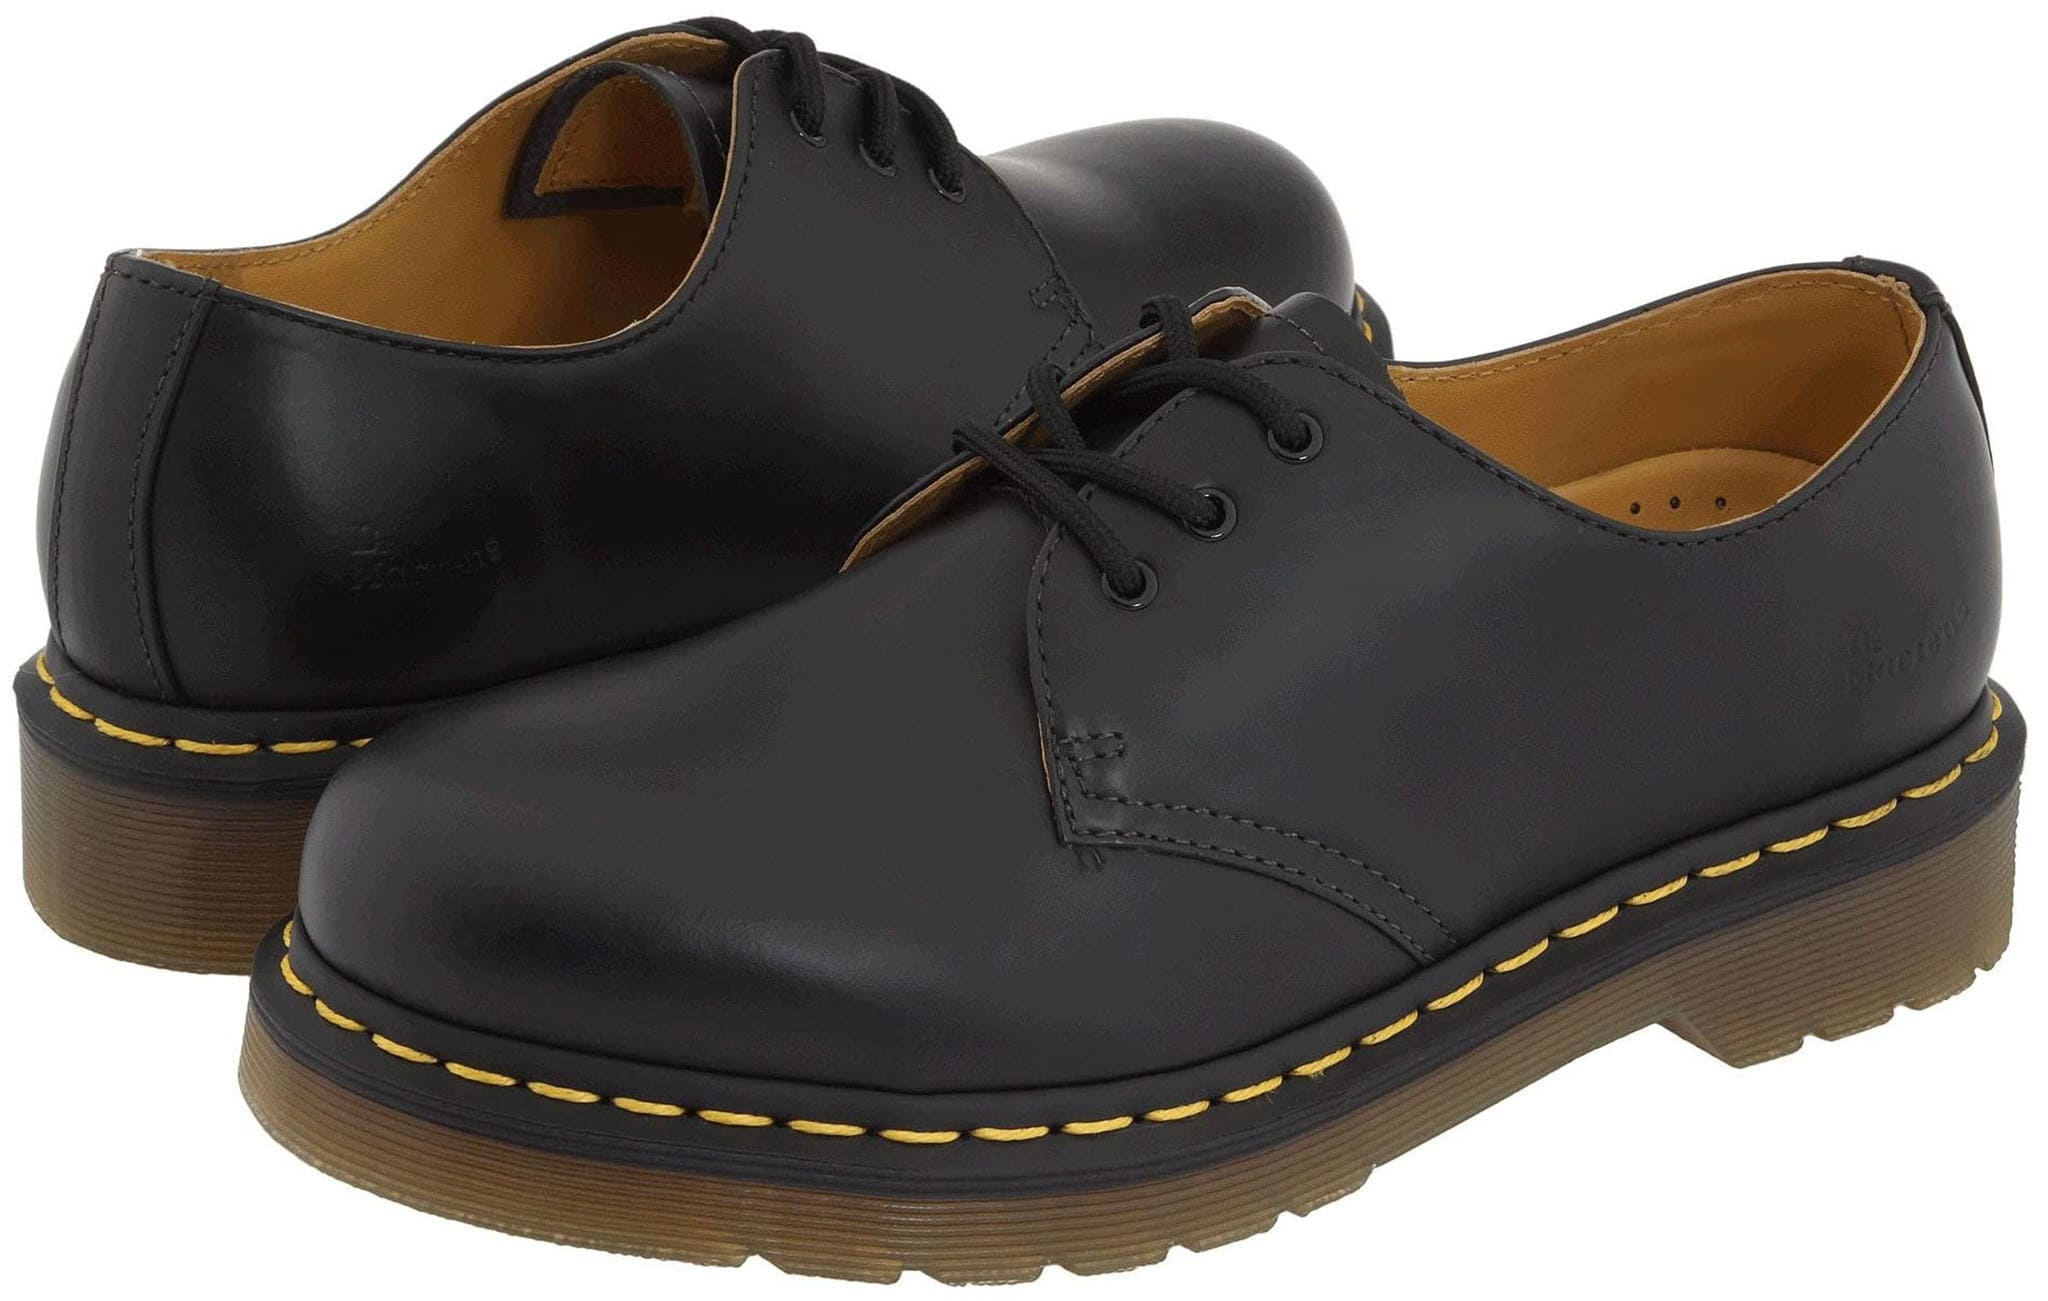 Dr. Martens 1461 Gibson oxfords feature a smooth leather upper with classic Doc's DNA